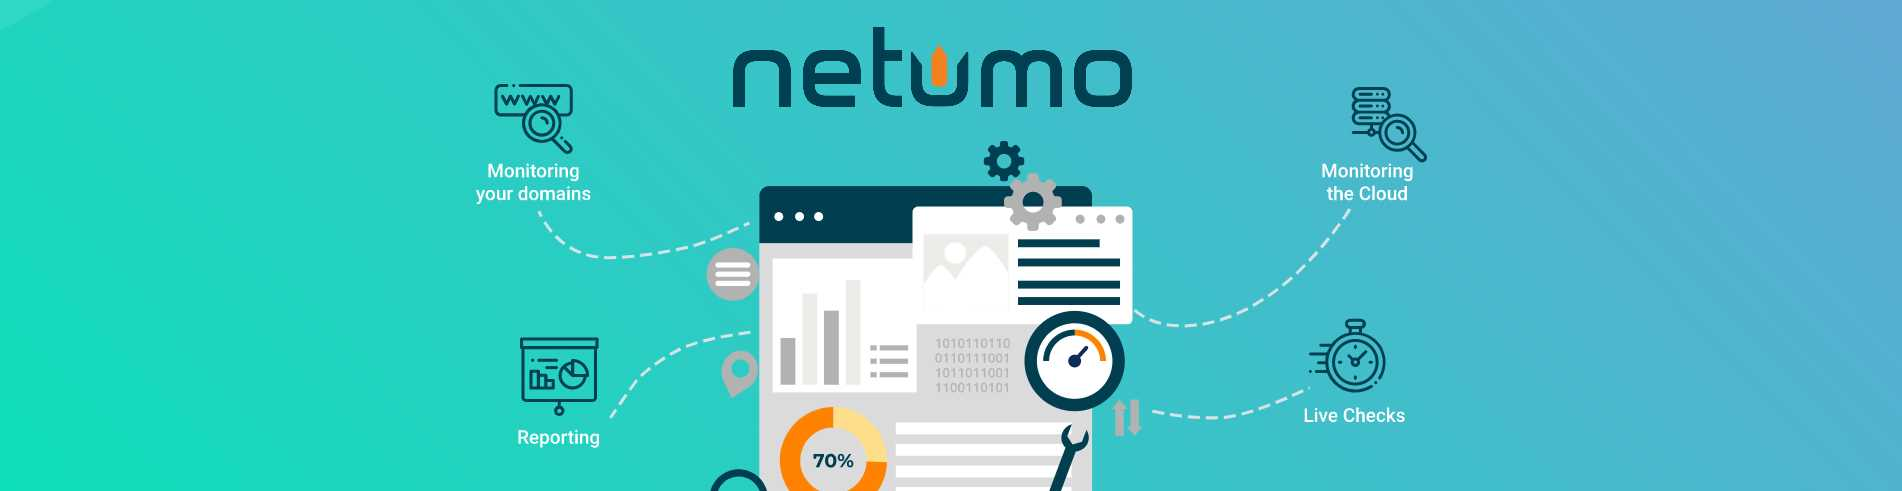 About Netumo Homepage